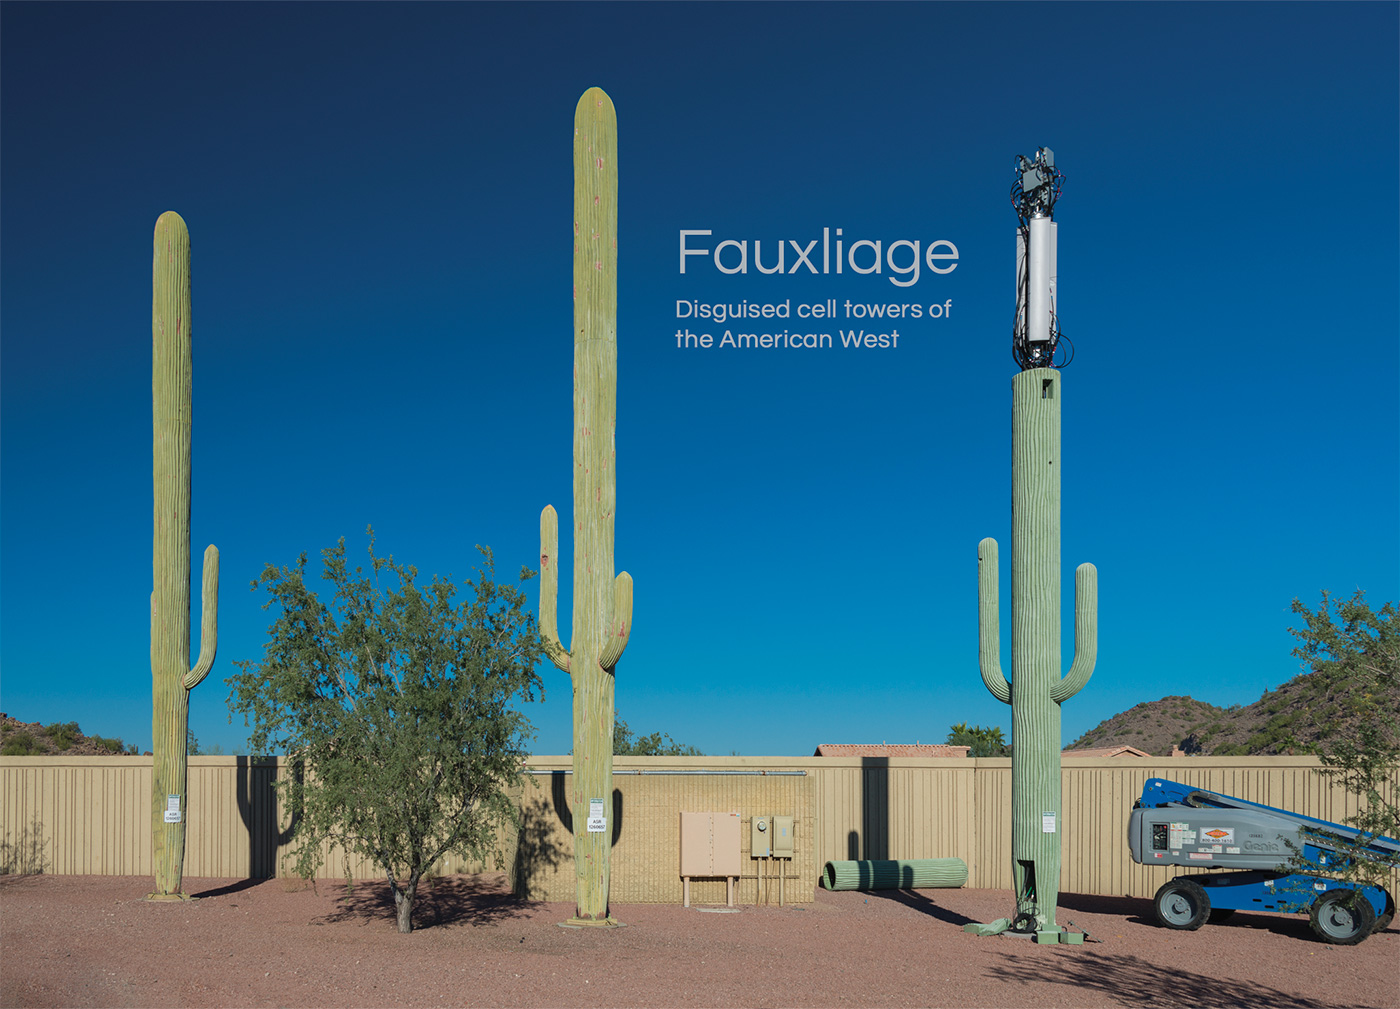 Fauxliage: Disguised cell towers of the American West